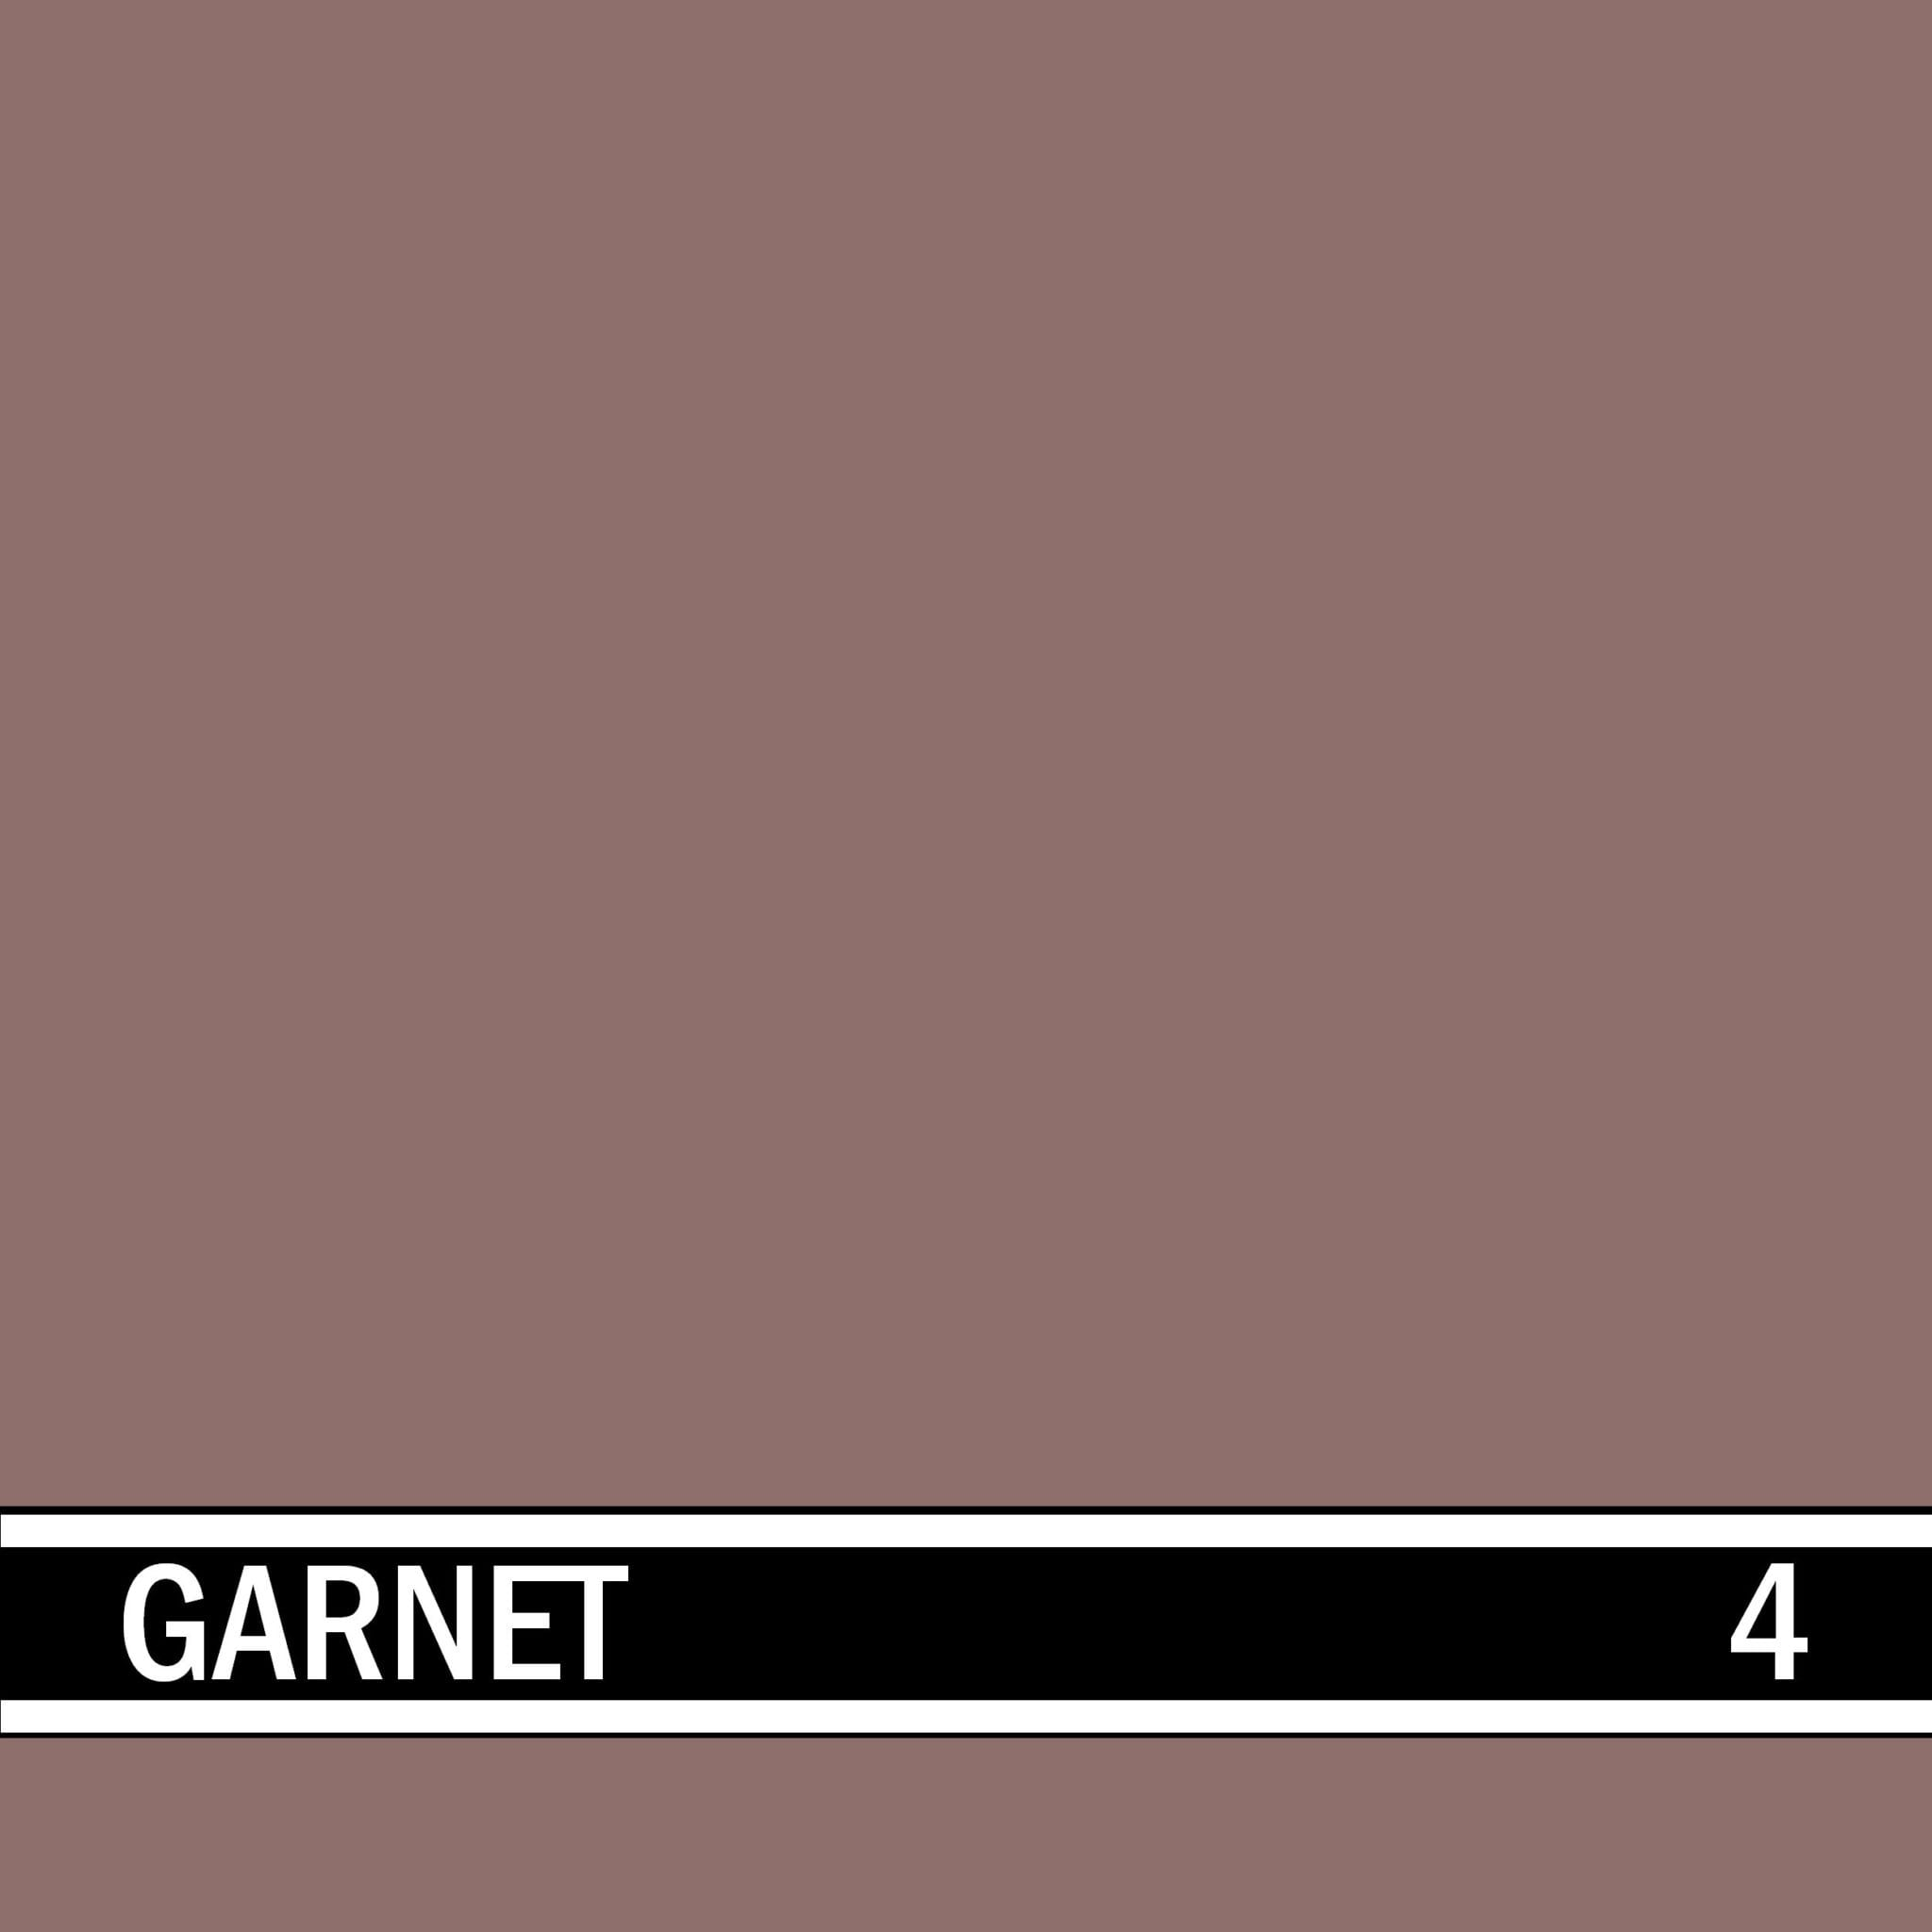 Garnet integral concrete color for stamped concrete and decorative colored concrete